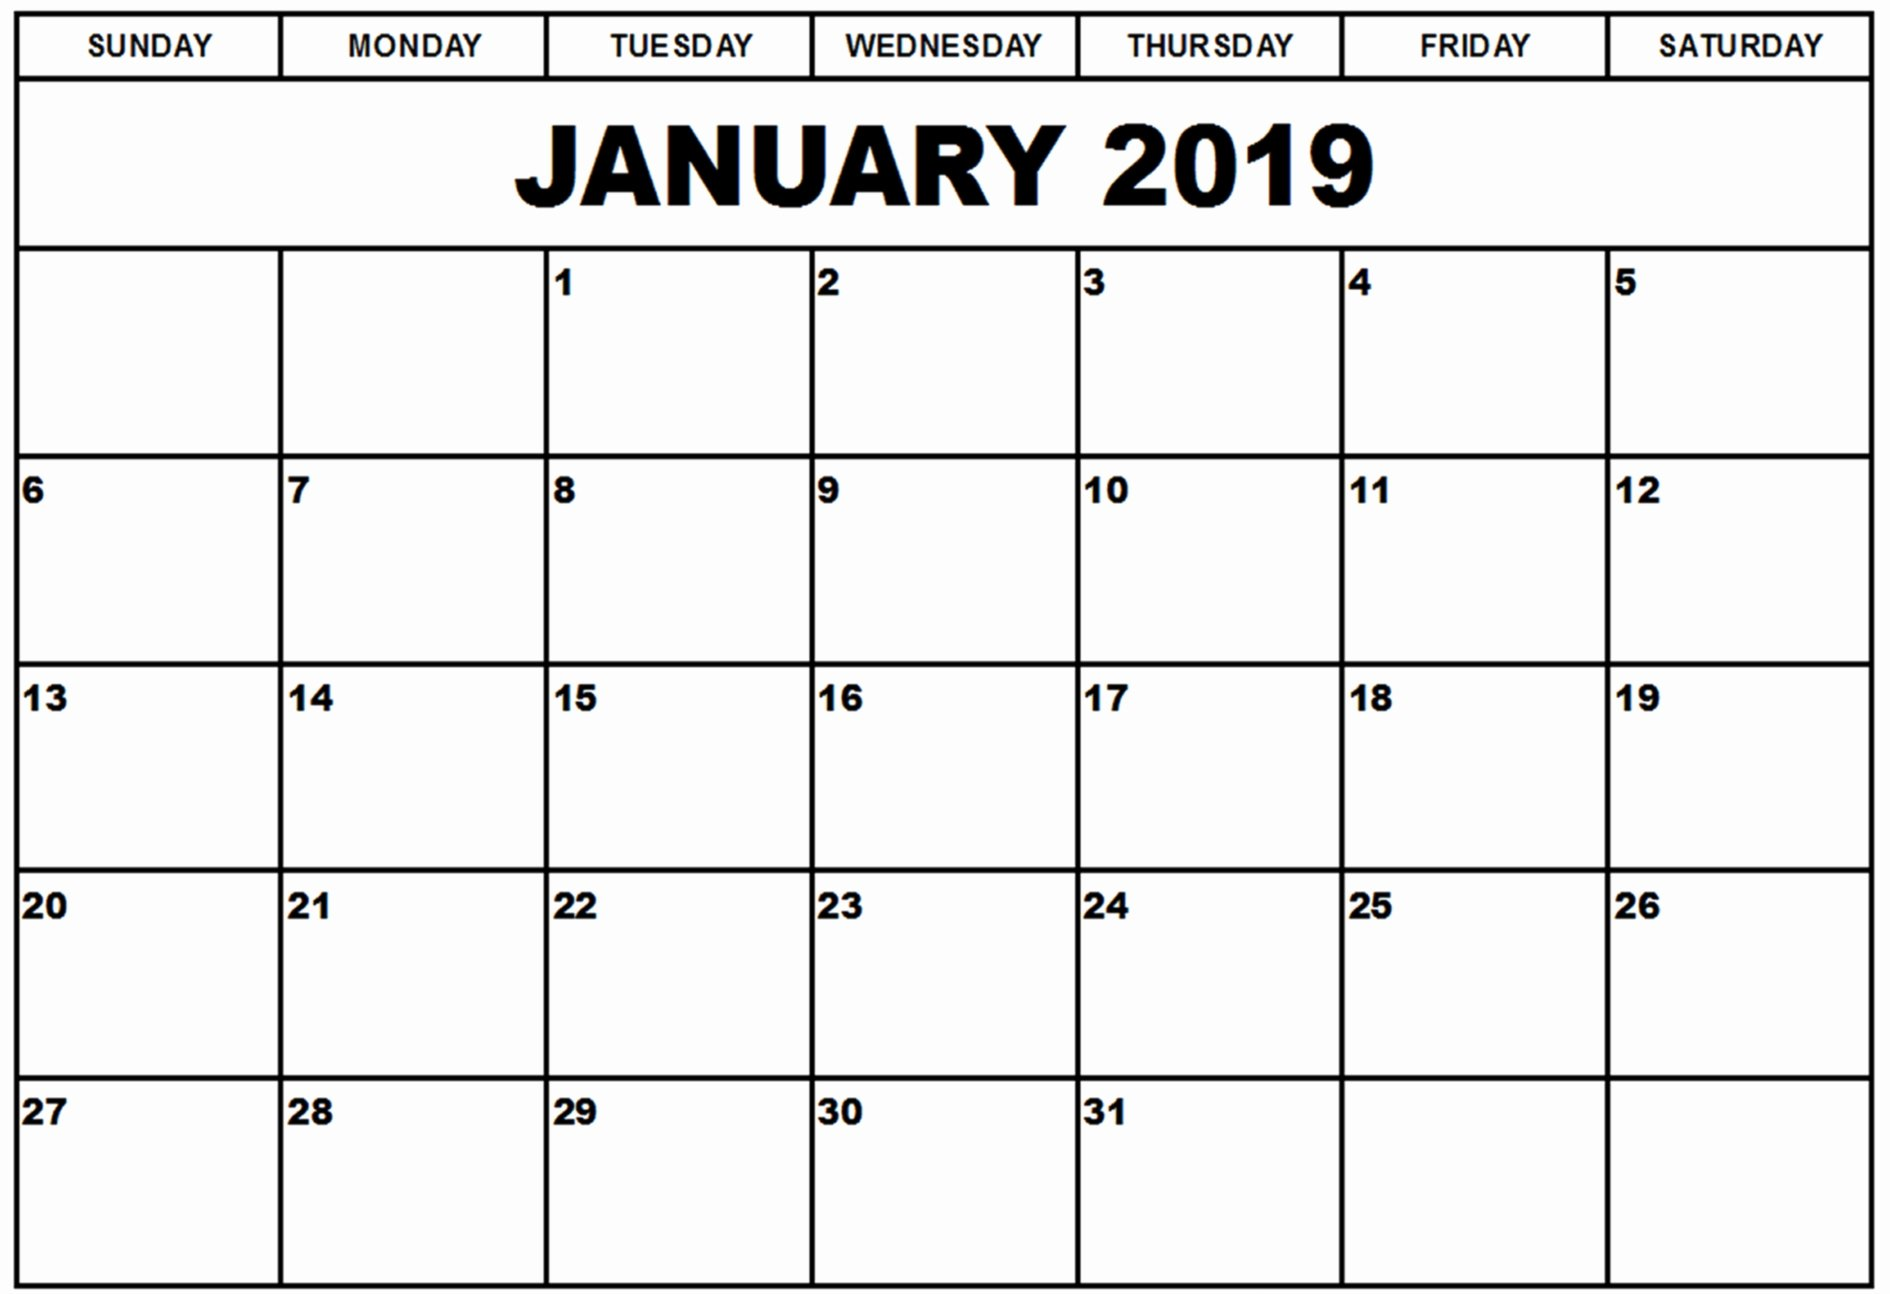 2019 Monthly Calendar Word Best Of January 2019 Calendar Kalnirnay Free Printable Word